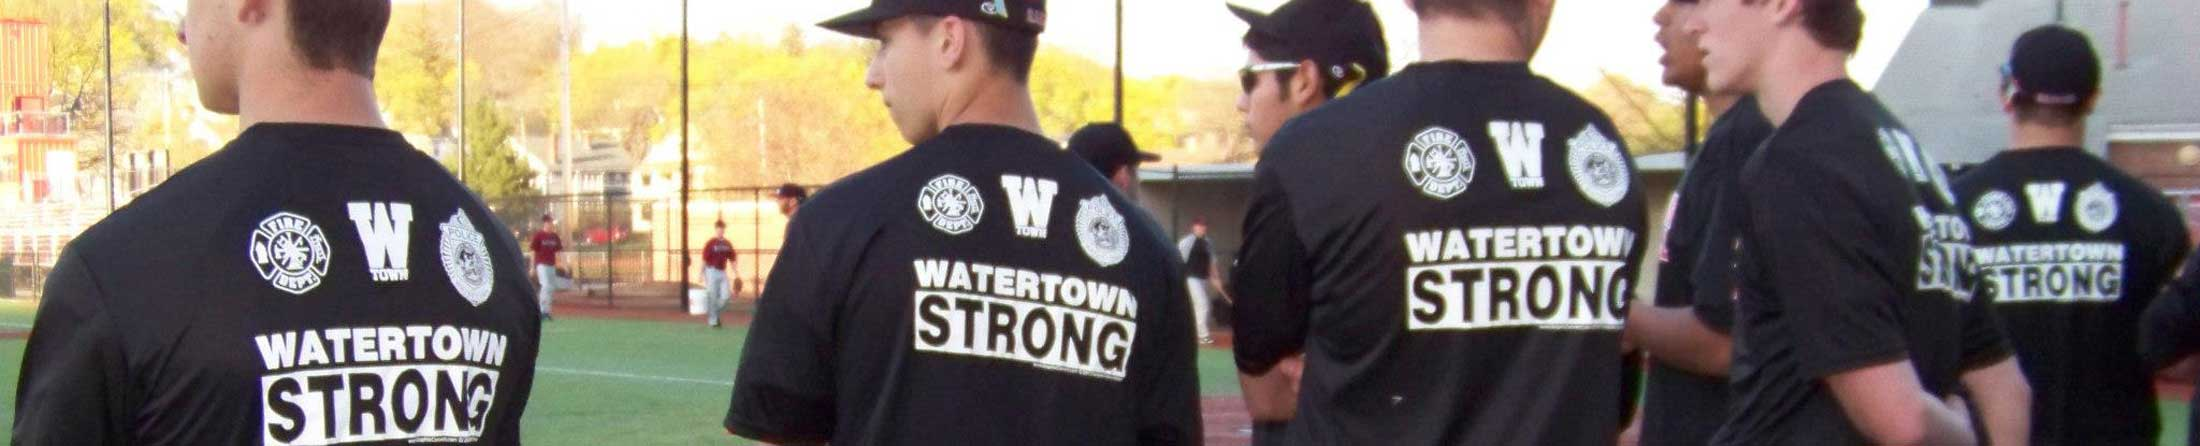 Watertown Strong Baseball - header